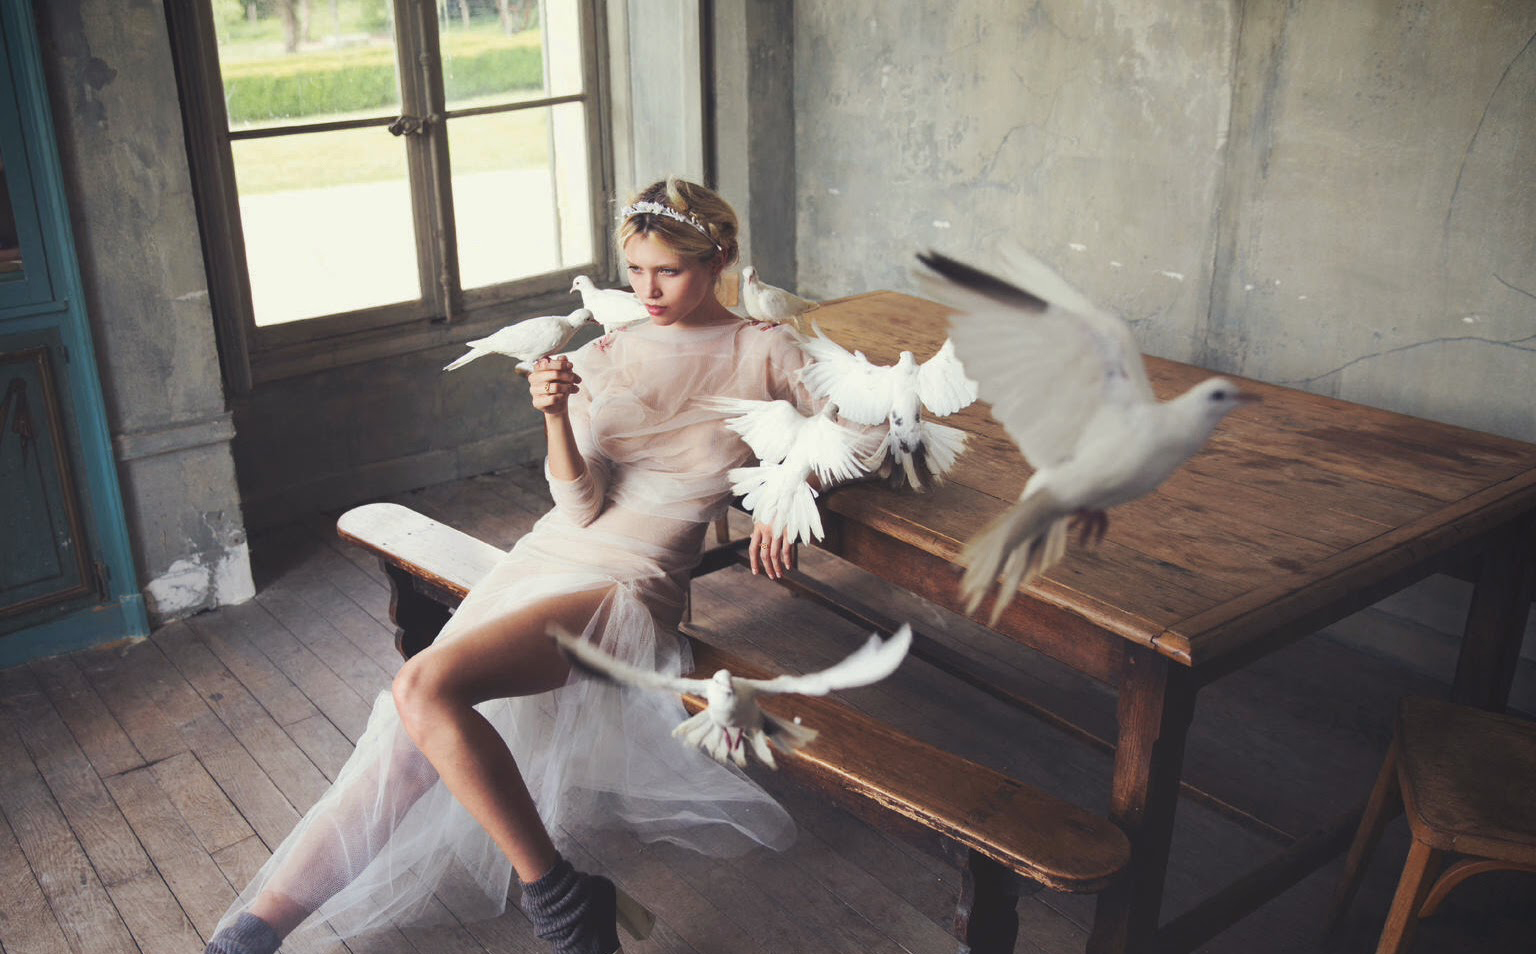 white mischief: hana jirickova by david bellemere for porter #5 winter 2014